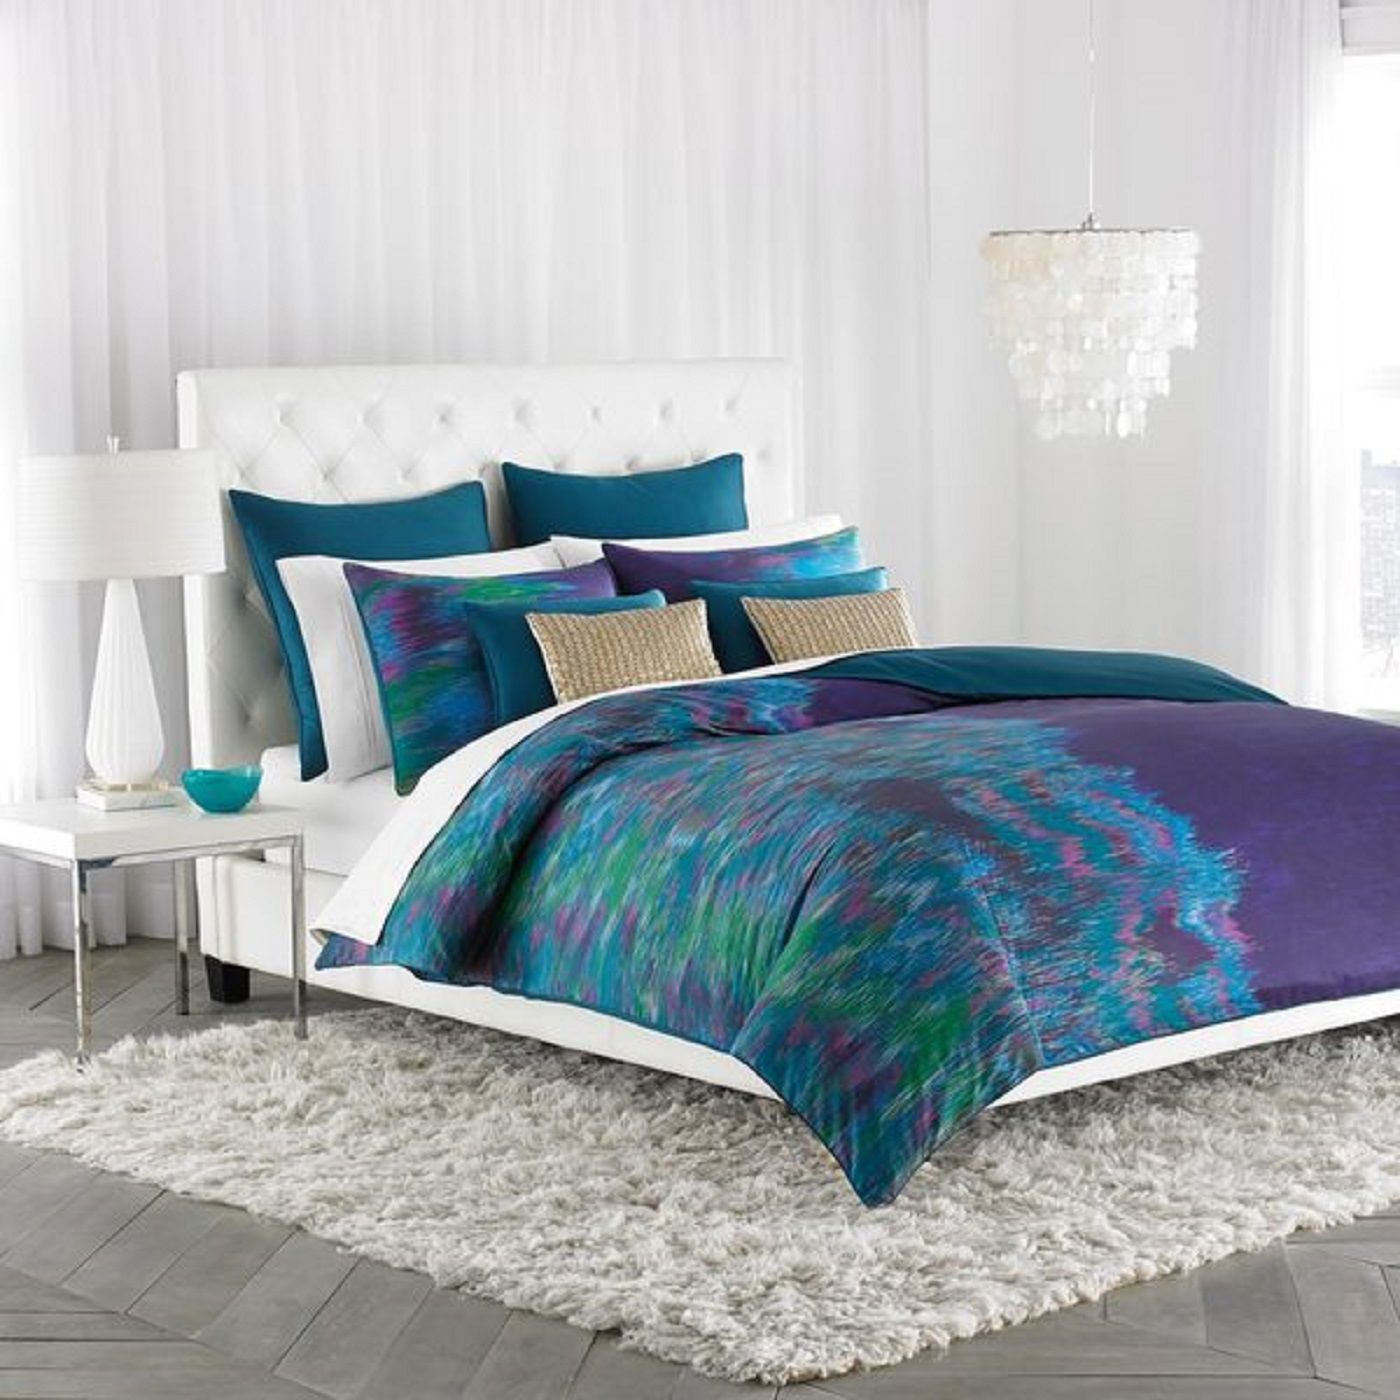 Decorating Your Bedroom With Green Blue And Purple